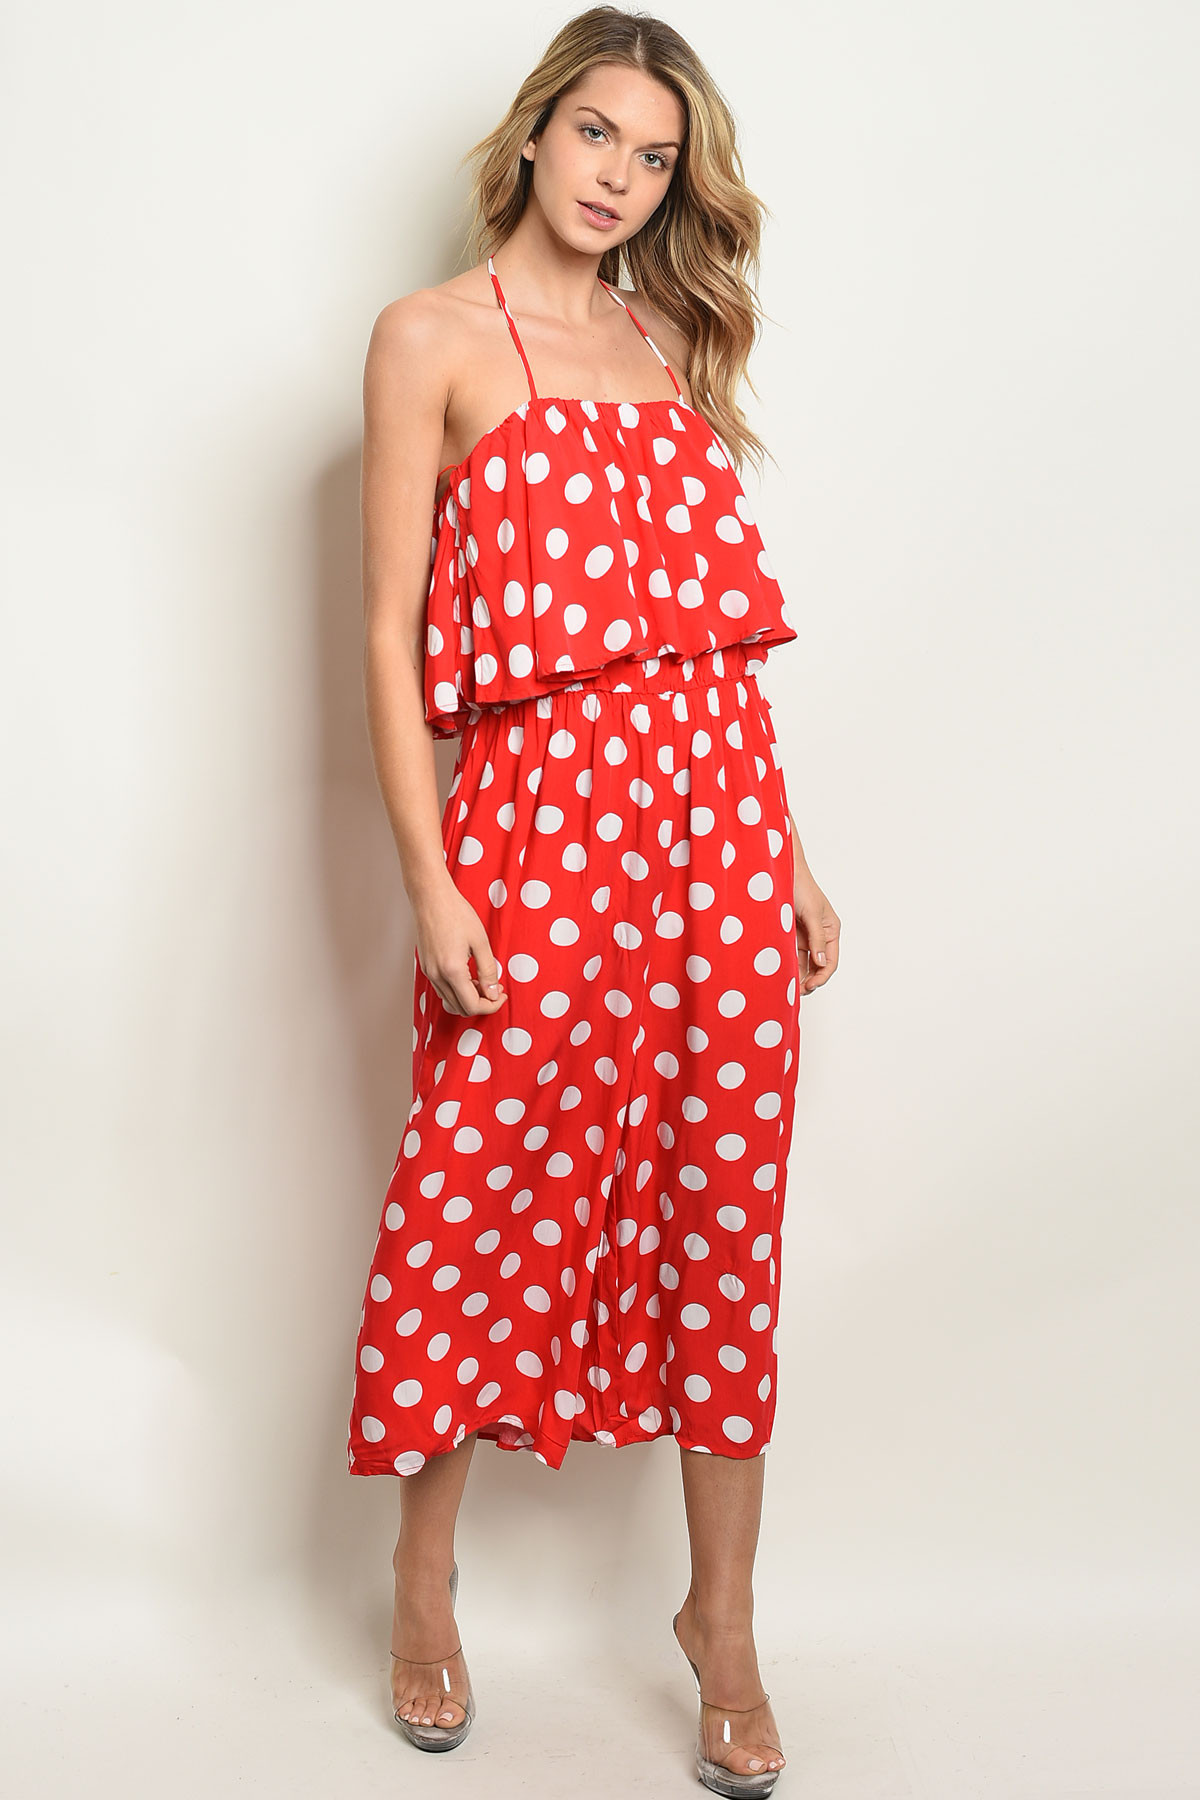 03cc6534a7 S25-5-4-J90038 RED WHITE WITH POLKA DOTS JUMPSUIT 2-2-2